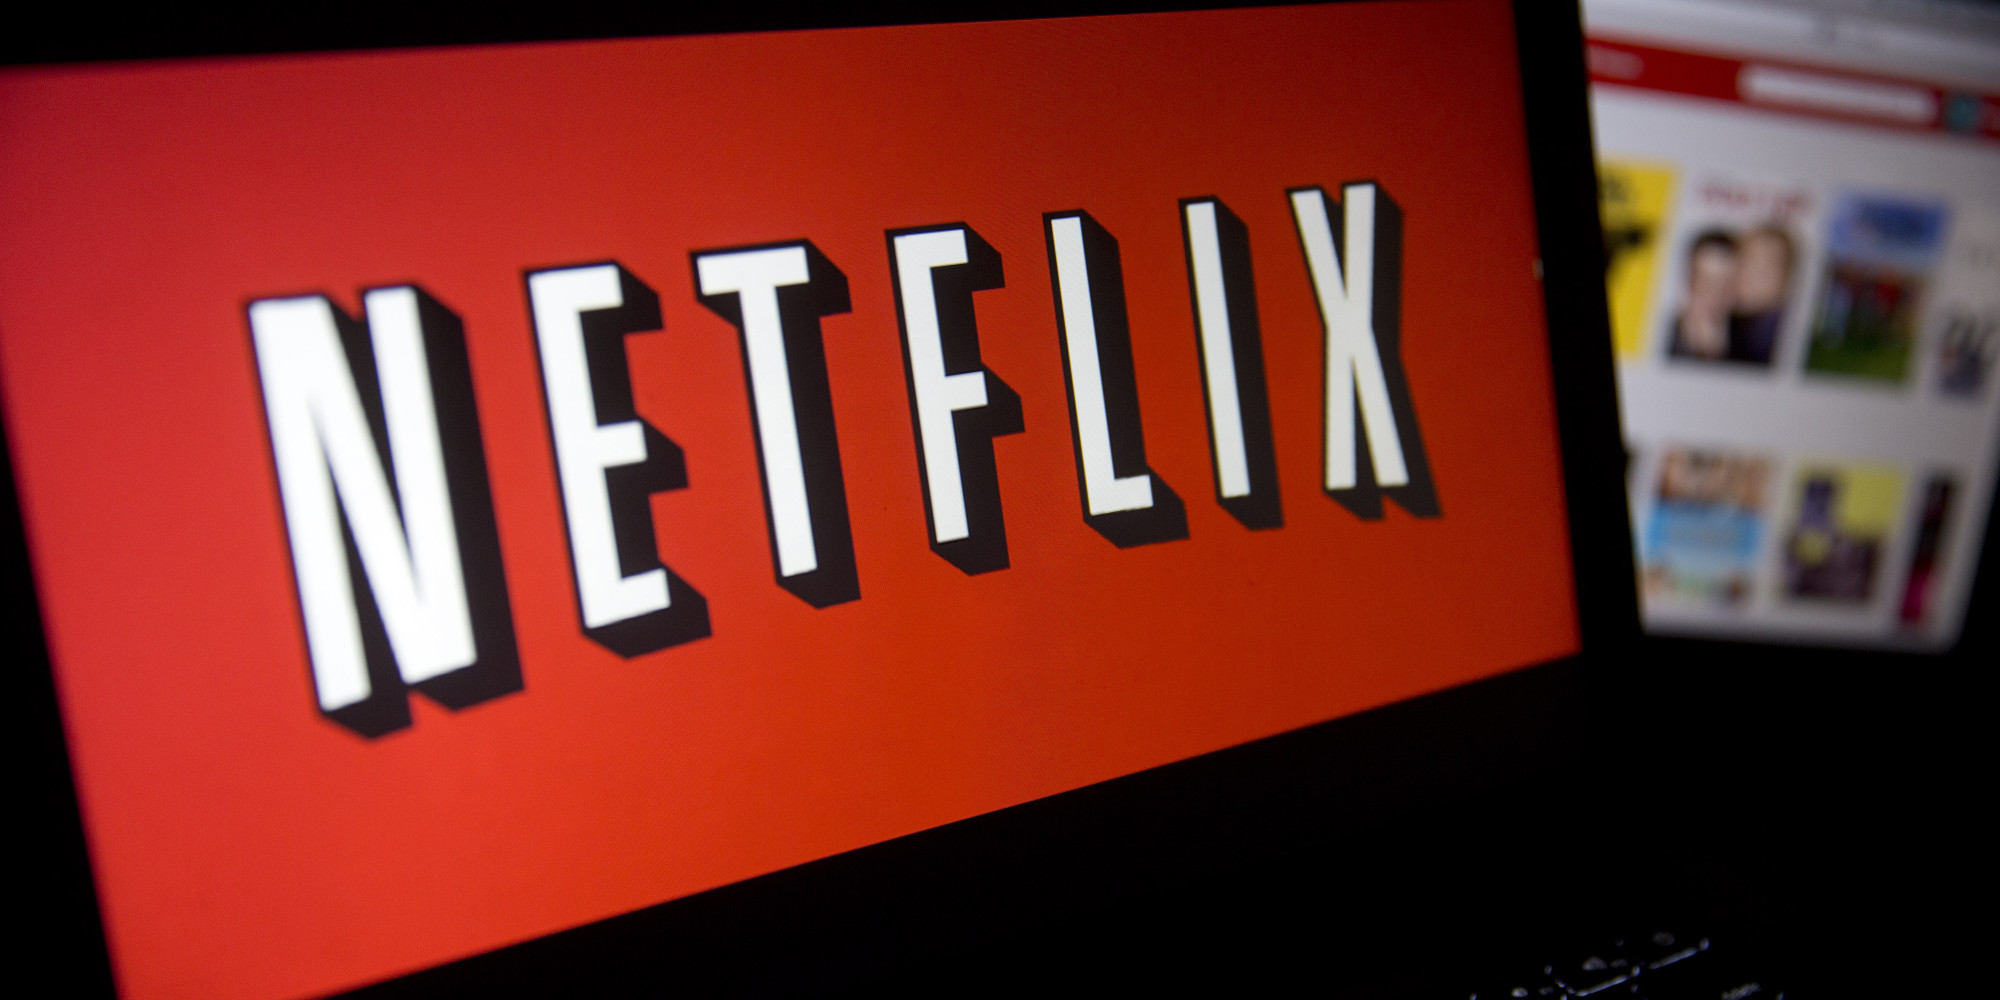 Netflix, Inc. (NASDAQ:NFLX) Will Debut In The Middle East In 2016 - Gazette Review